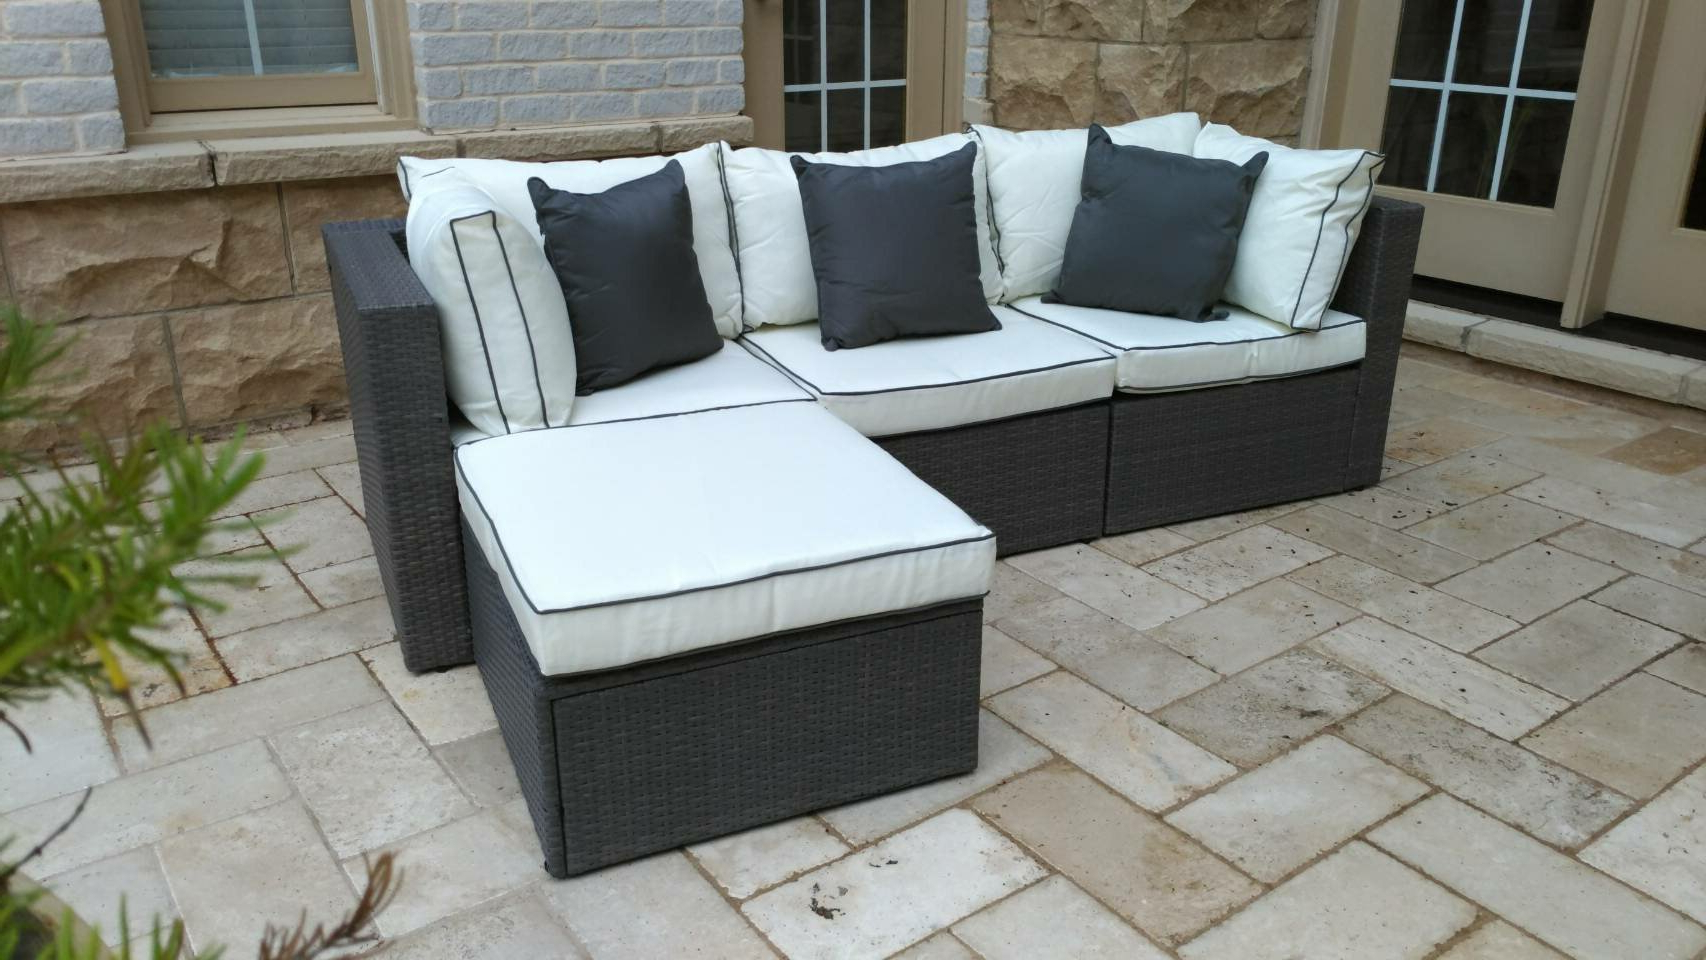 Most Recently Released Three Posts Burruss Patio Sectional With Cushions Inside Brecht Patio Sectionals With Cushions (View 4 of 25)